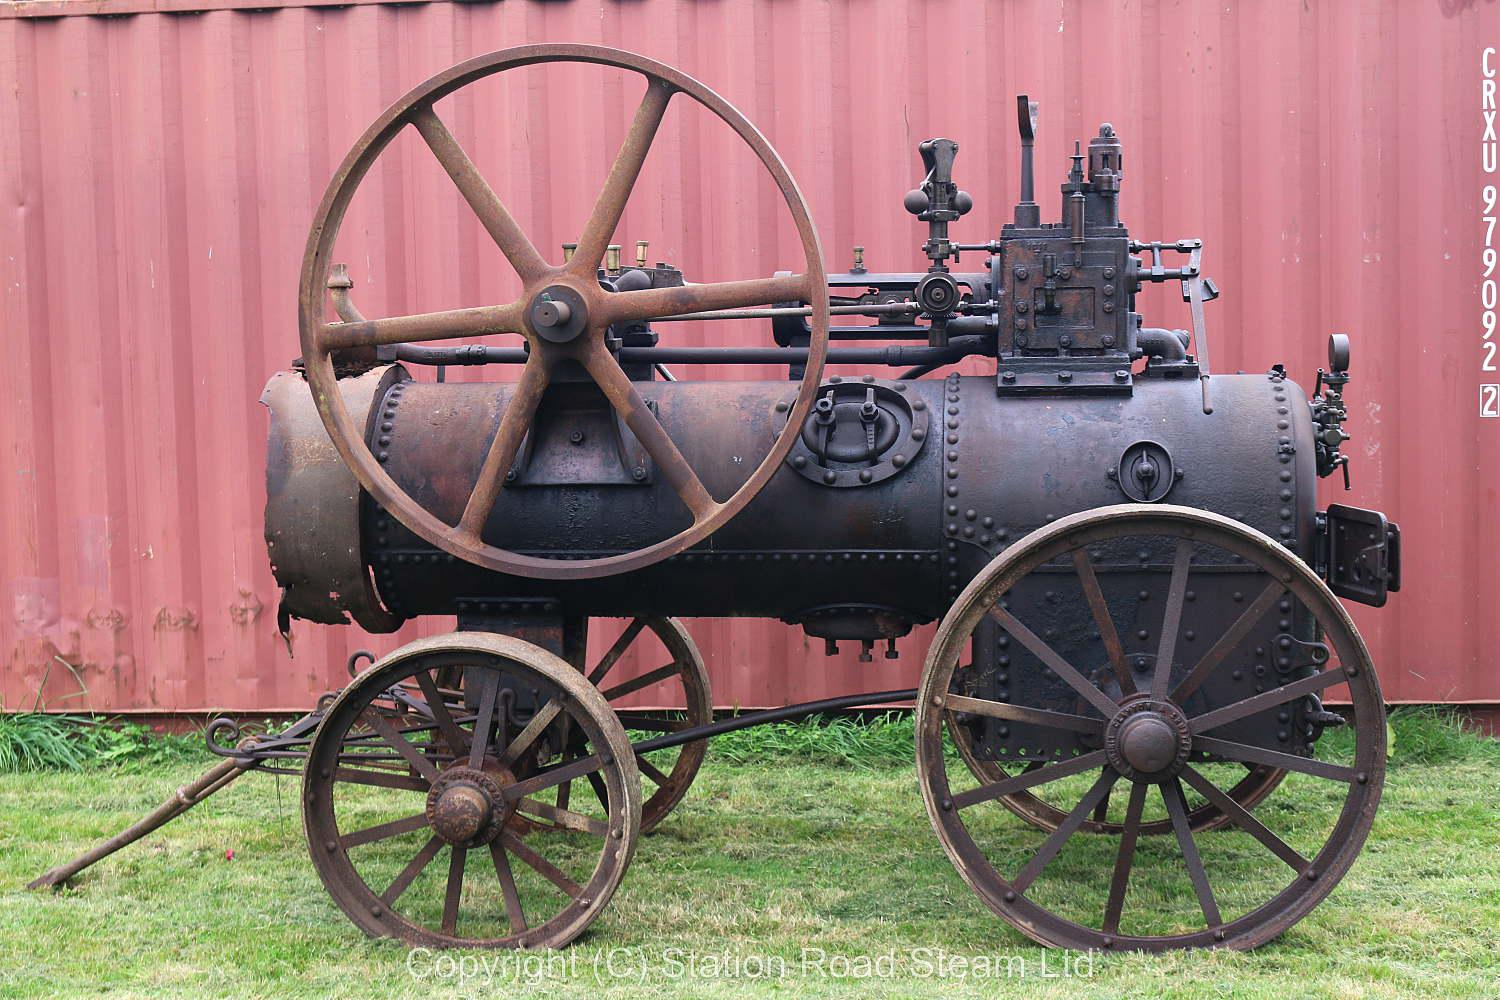 Clayton & Shuttleworth 4nhp portable engine